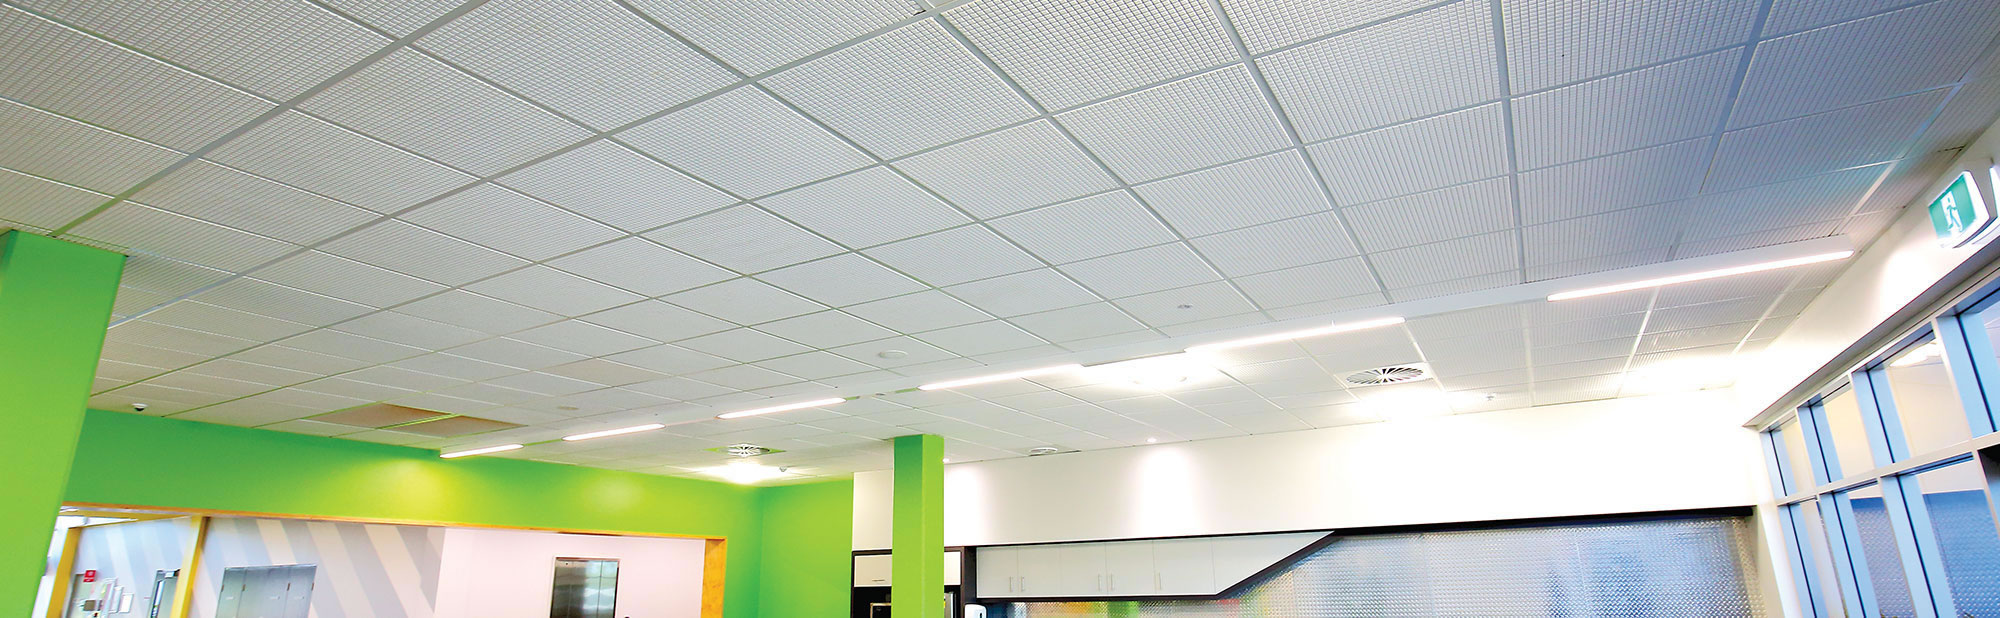 Acoustic ceiling tiles for commercial applications australian acoustic ceilings for commercial space doublecrazyfo Gallery